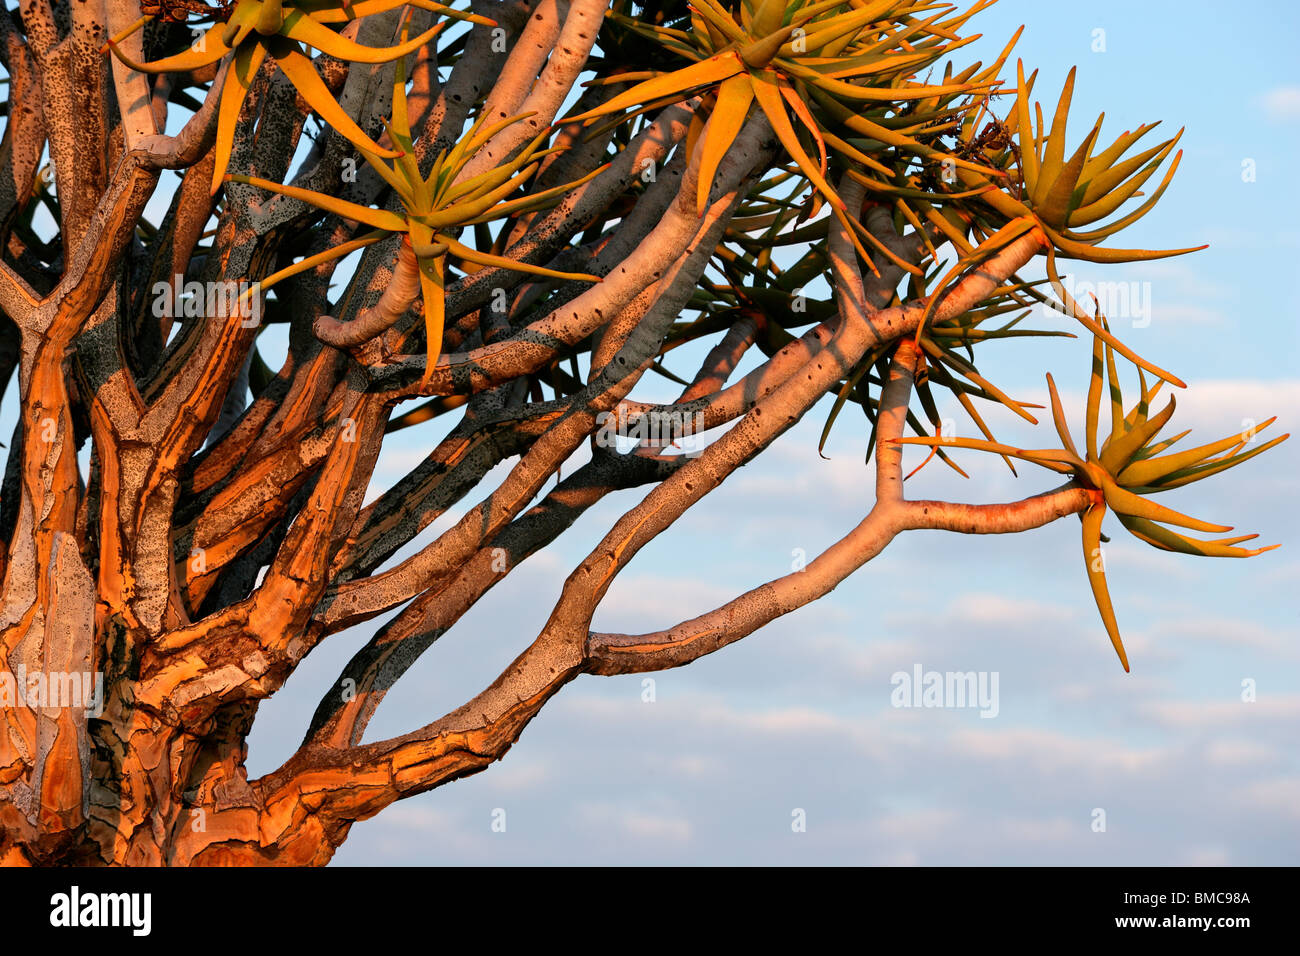 Branches of a quiver tree (Aloe dichotoma) in early morning light, Namibia, southern Africa - Stock Image